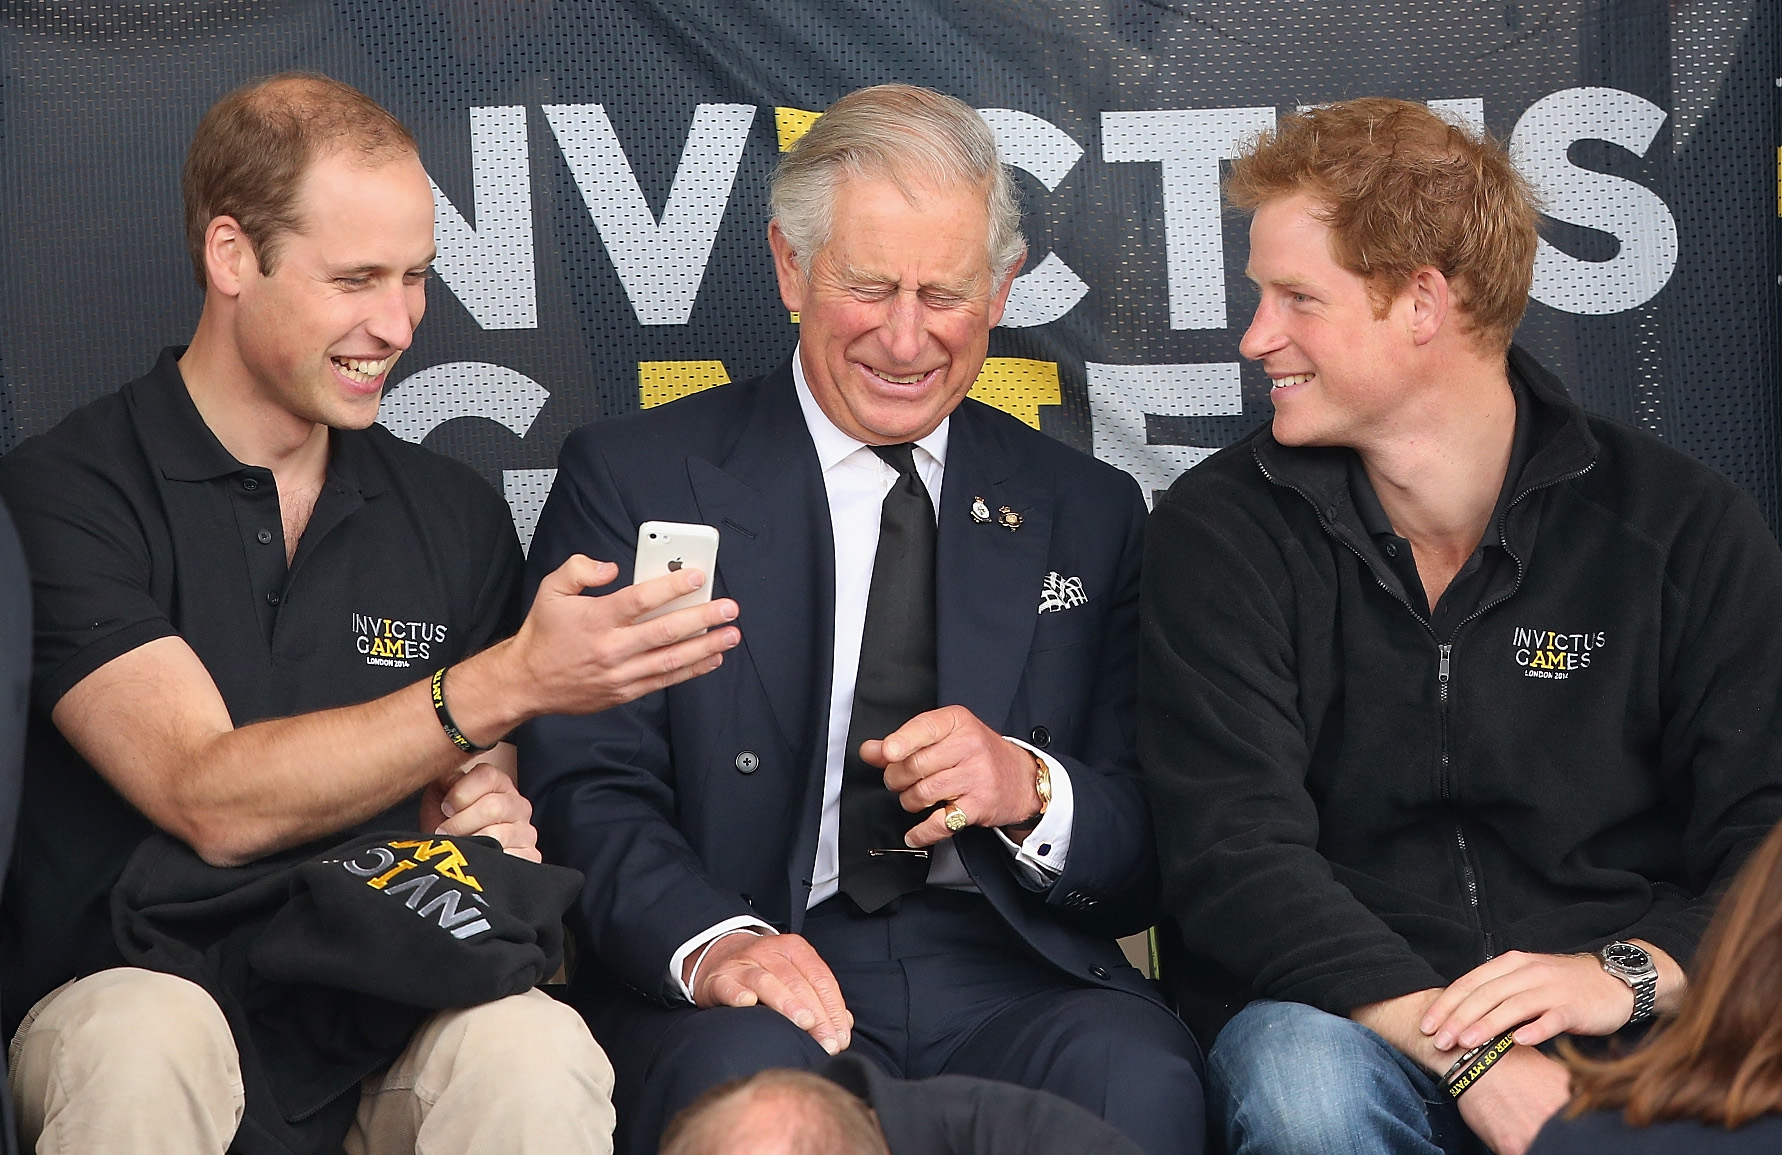 Prince William, Duke of Cambridge, Prince Harry and Prince Charles, Prince of Wales look at a mobile phone as they watch the athletics at Lee Valley Track during the Invictus Games on September 11, 2014 in London, England. (Photo by Chris Jackson/Getty Images)